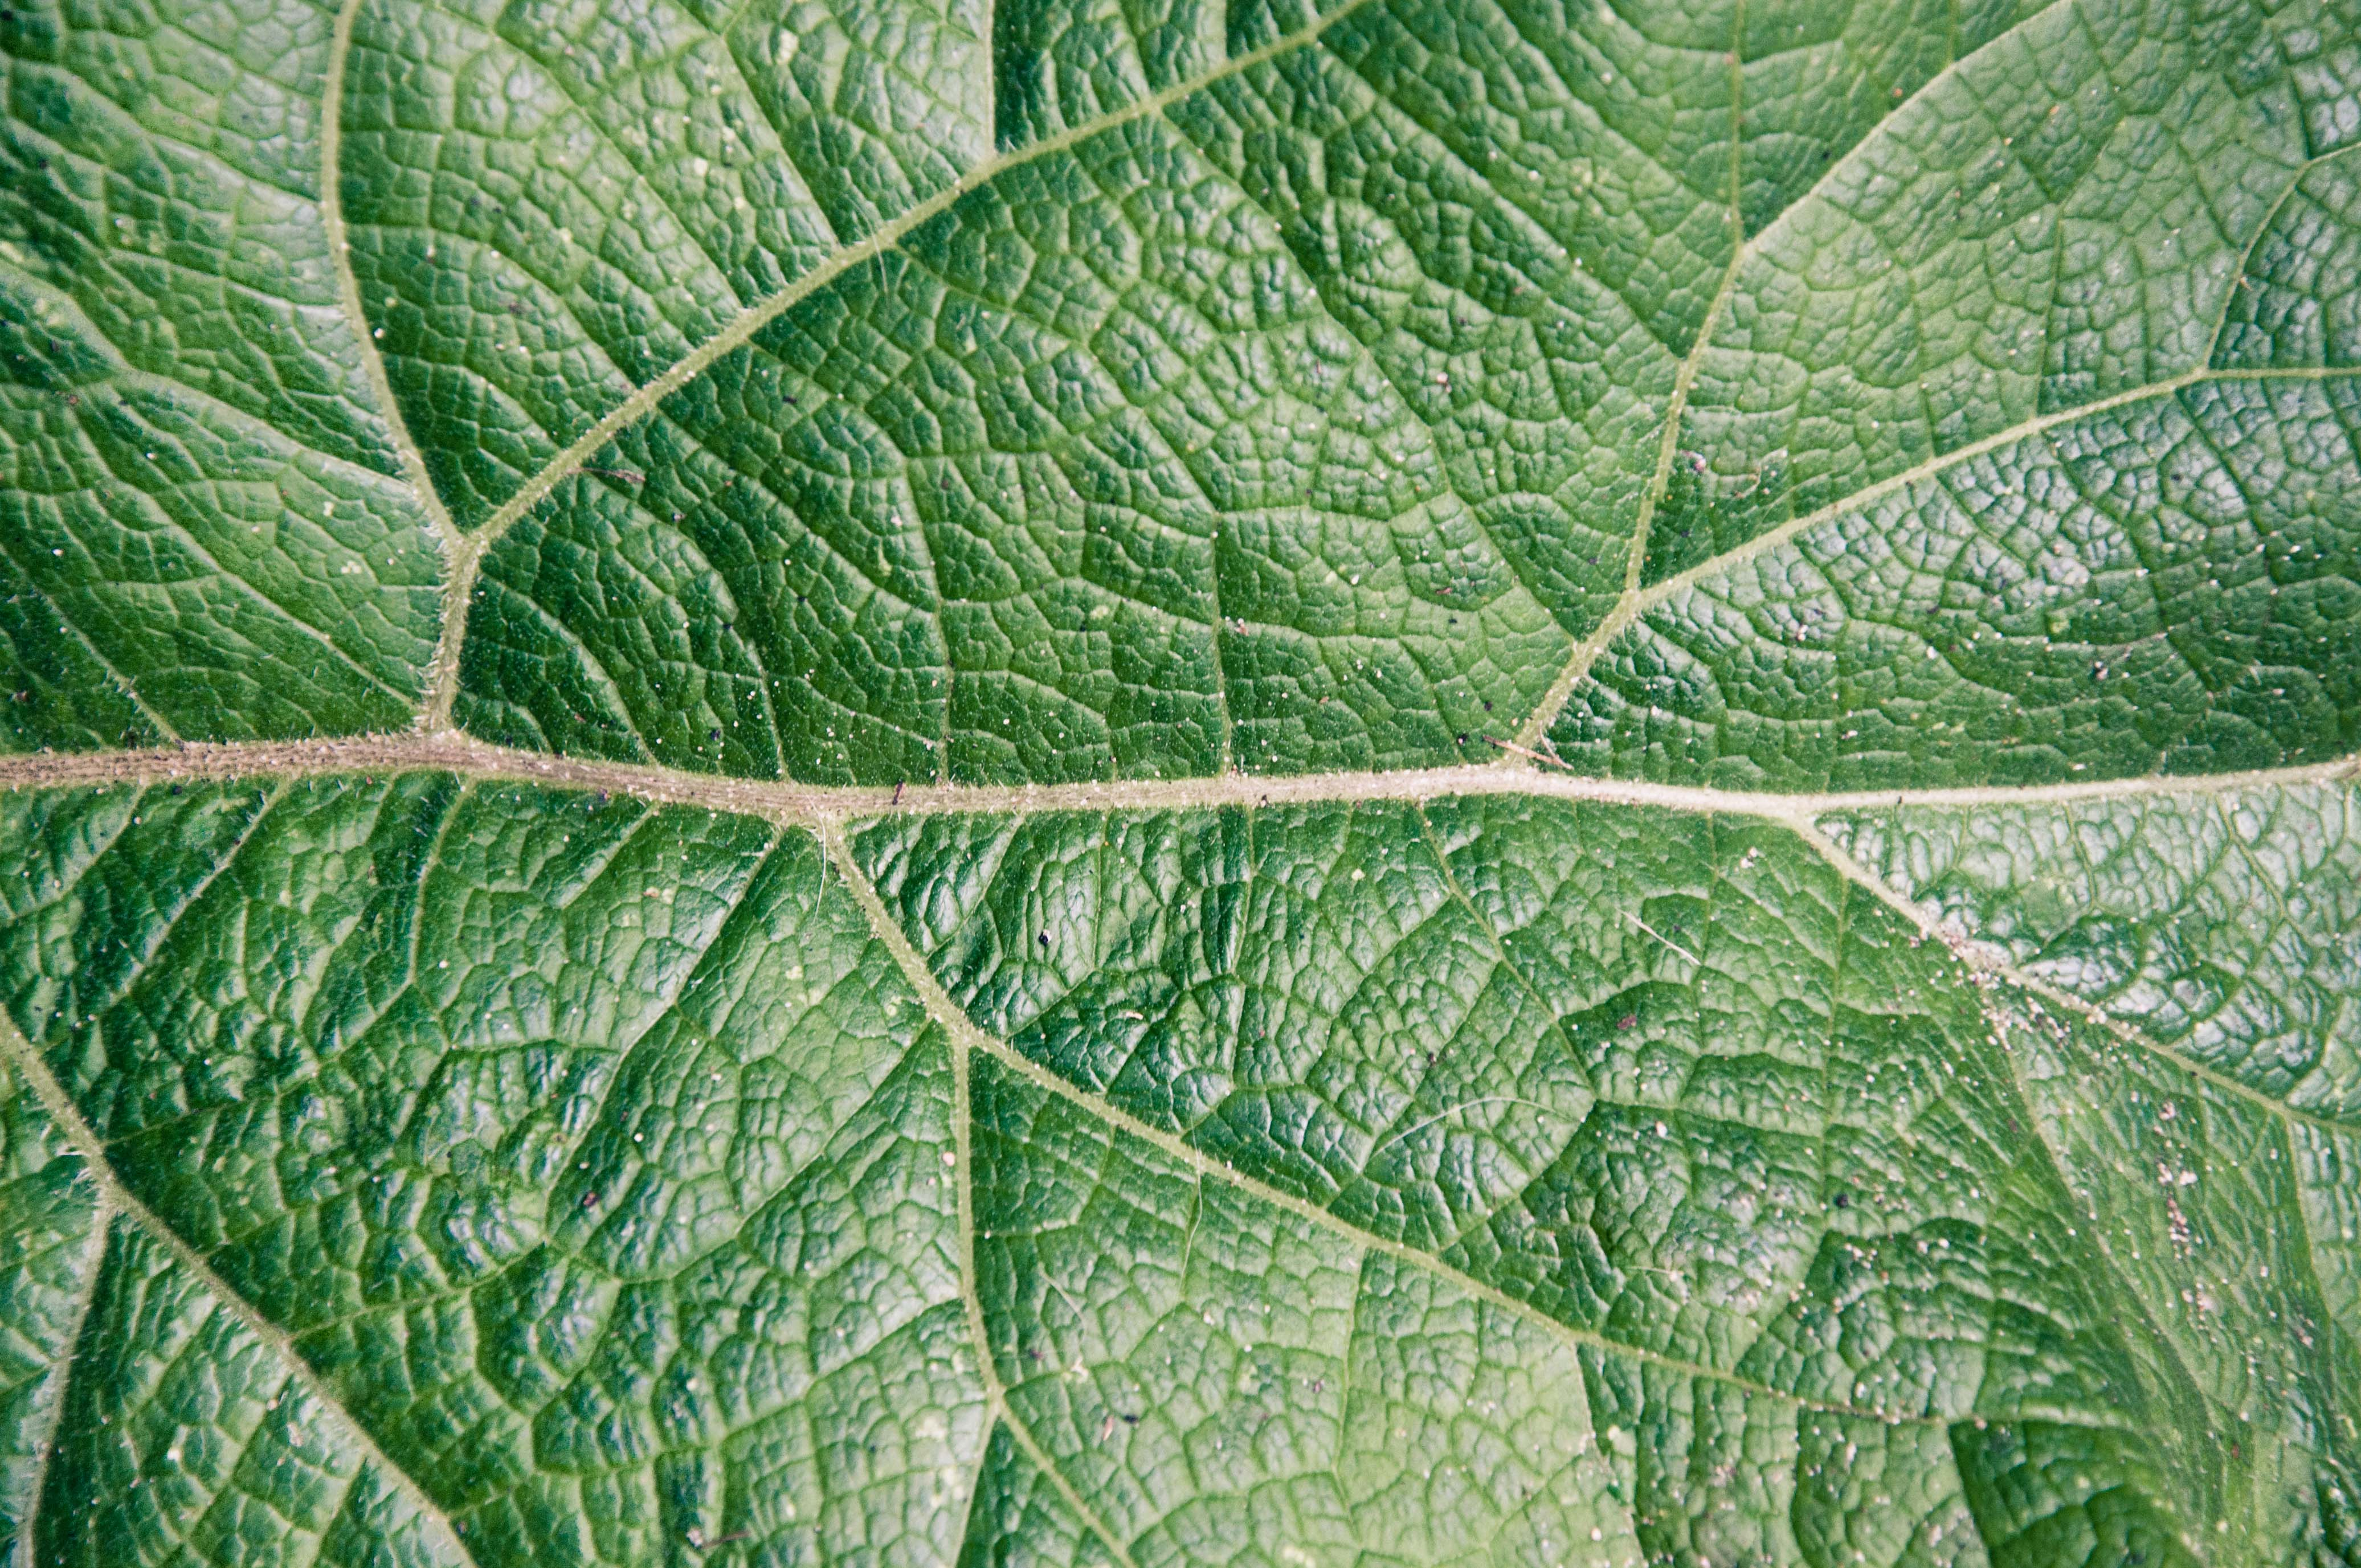 Free photo: Leaf texture - Abstract, Plant, Veins - Free Download - Jooinn